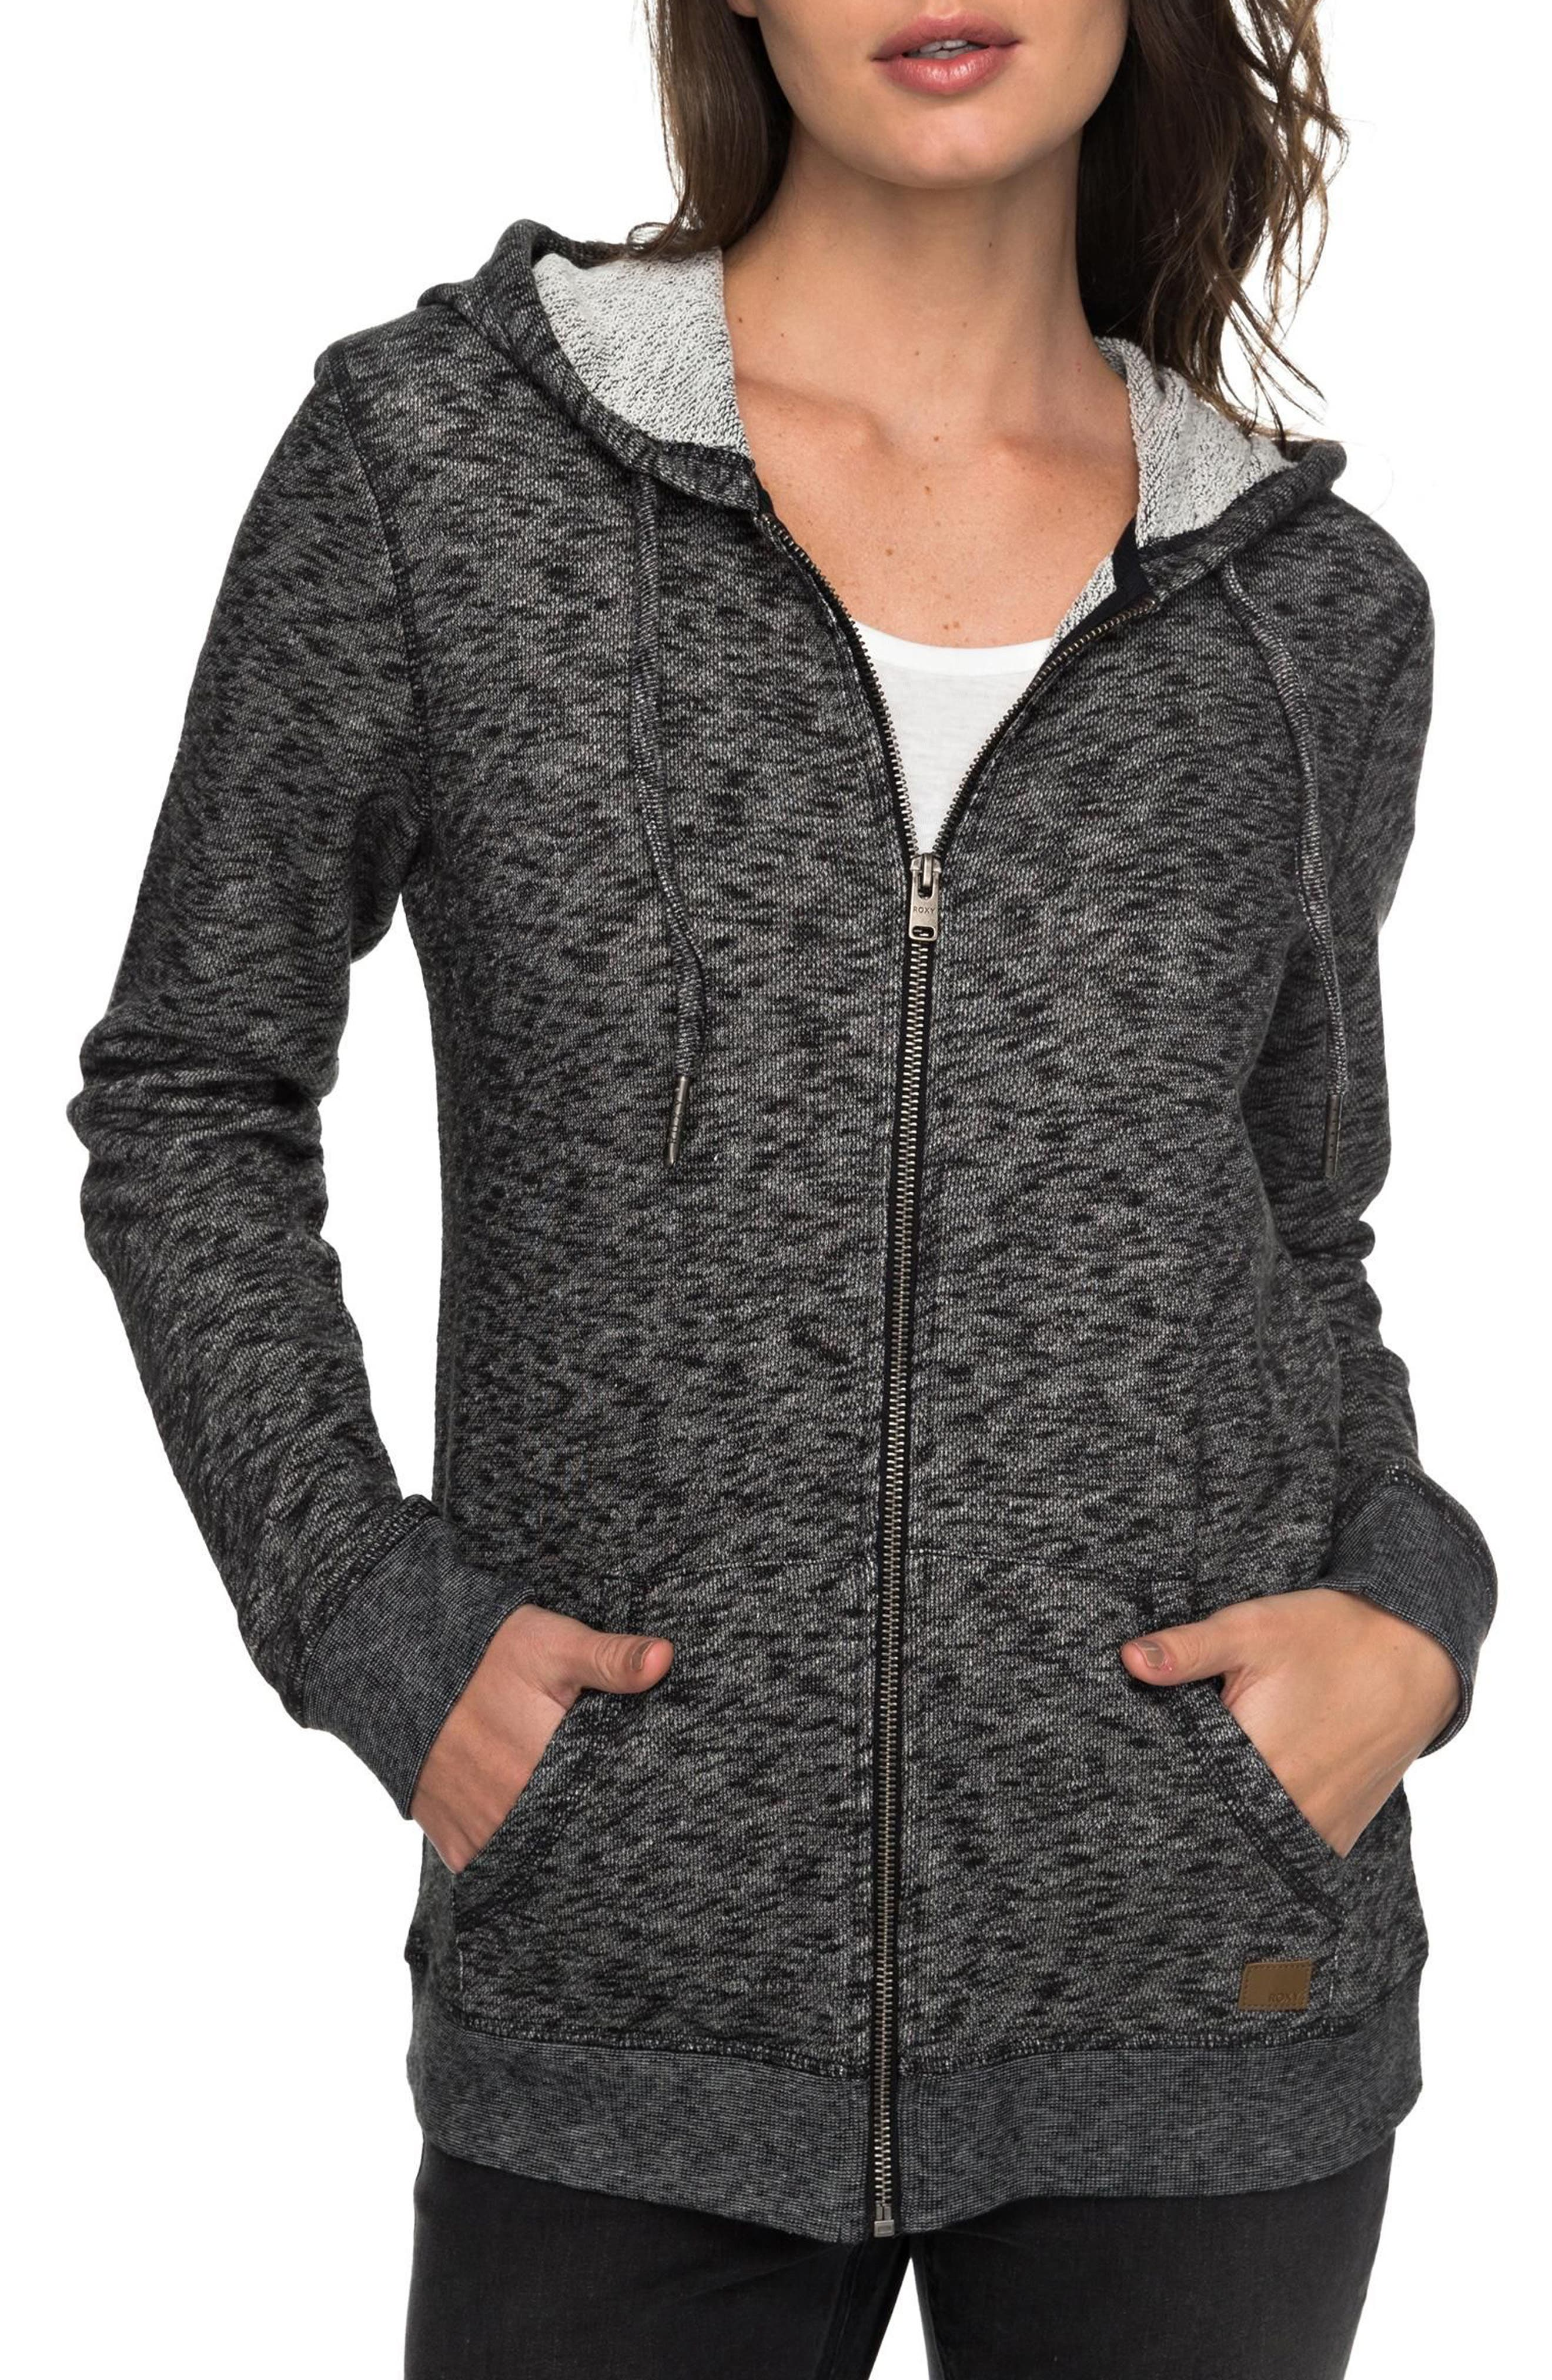 ROXY, Trippin Hoodie, Main thumbnail 1, color, ANTHRACITE HEATHER